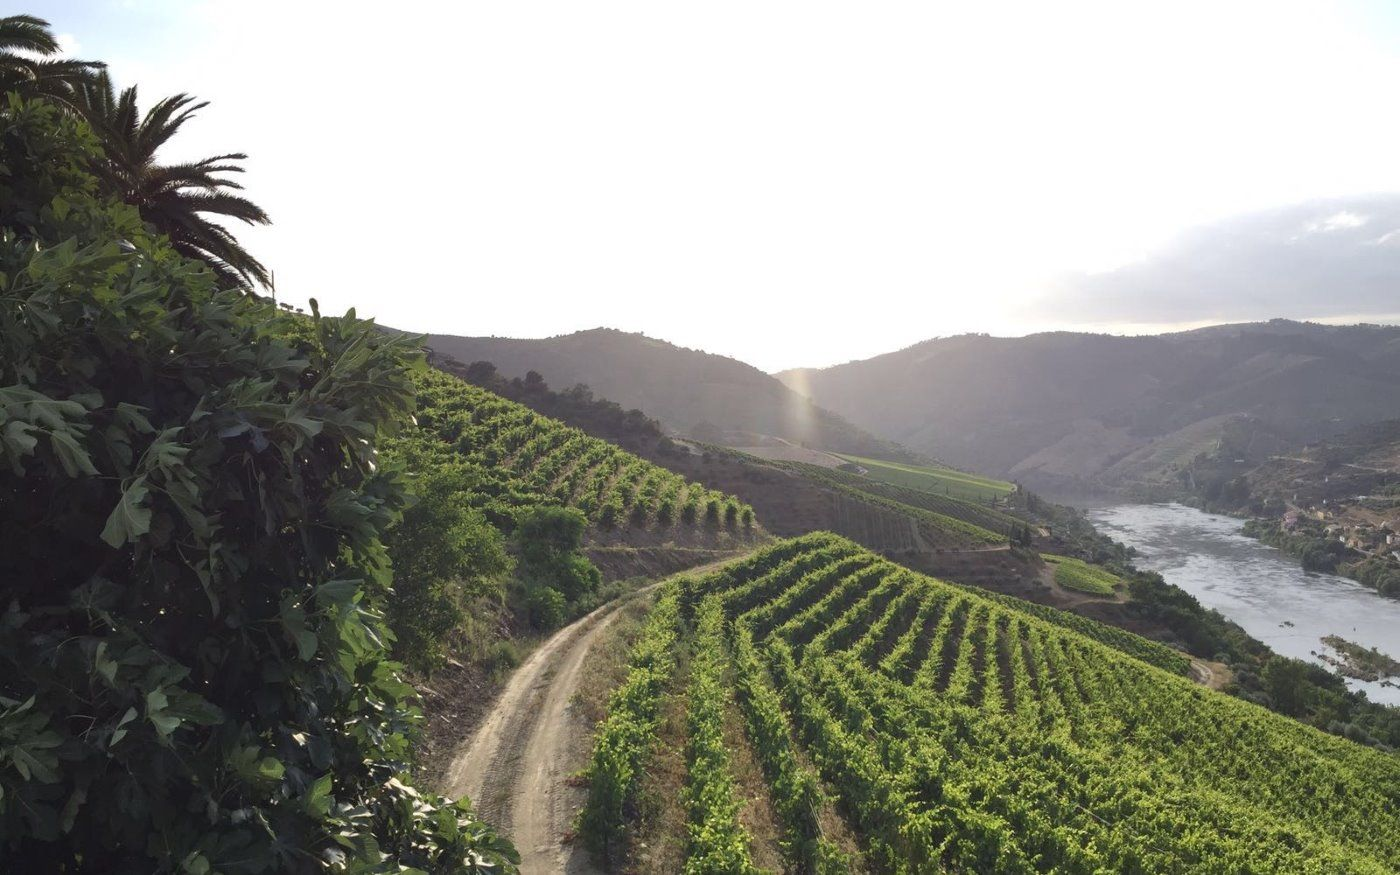 ONE DAY IN DOURO